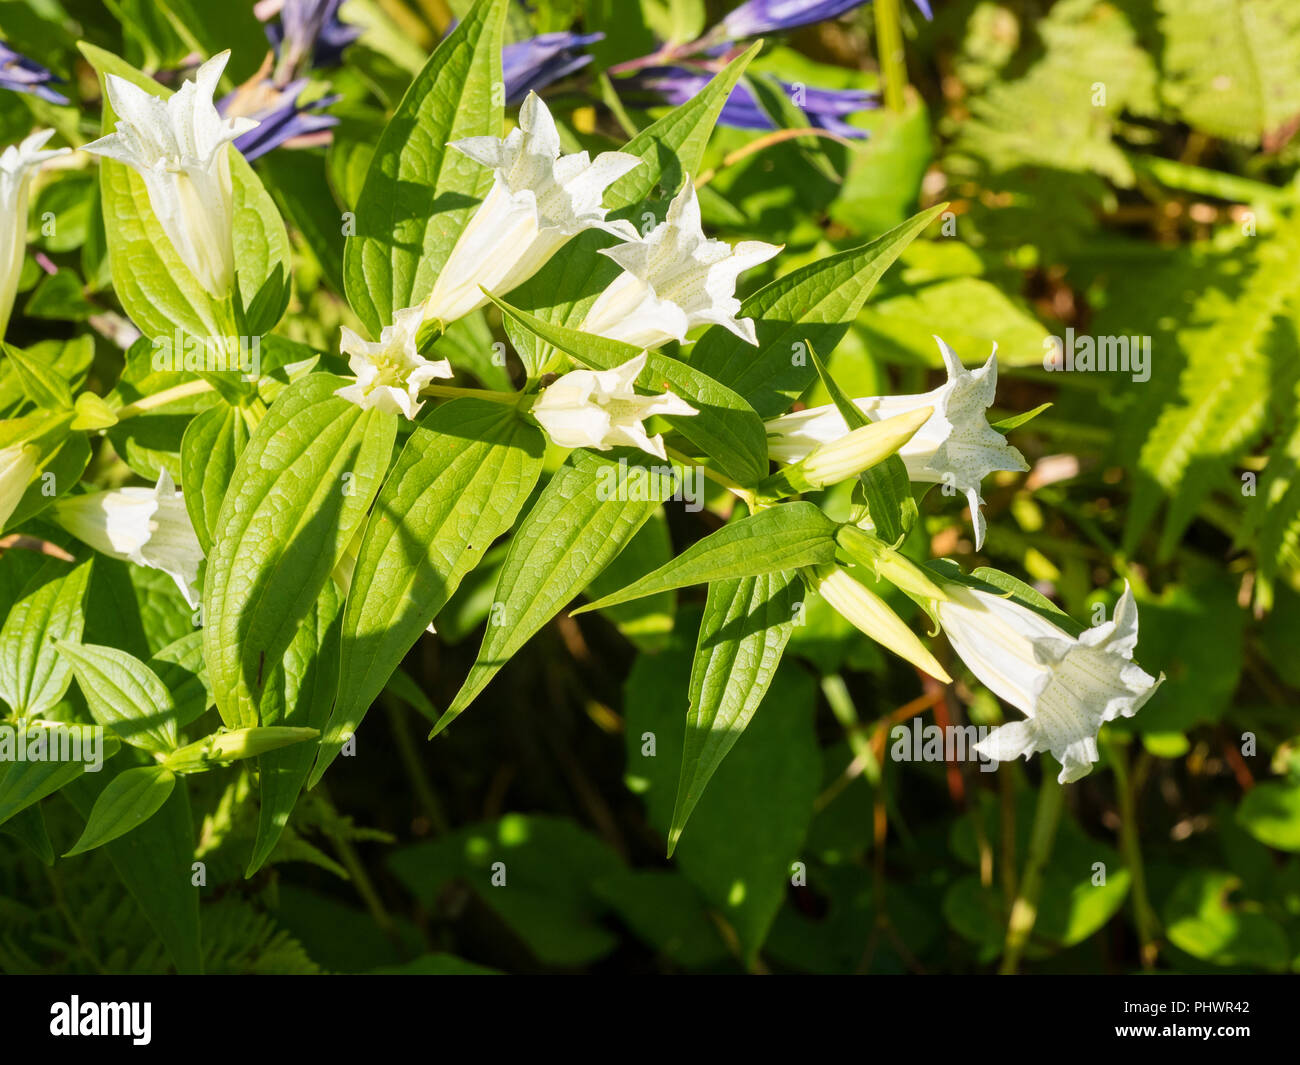 Arching stems of the hardy perennial white form of the willow gentian, Gentiana asclepiadea 'Alba' - Stock Image